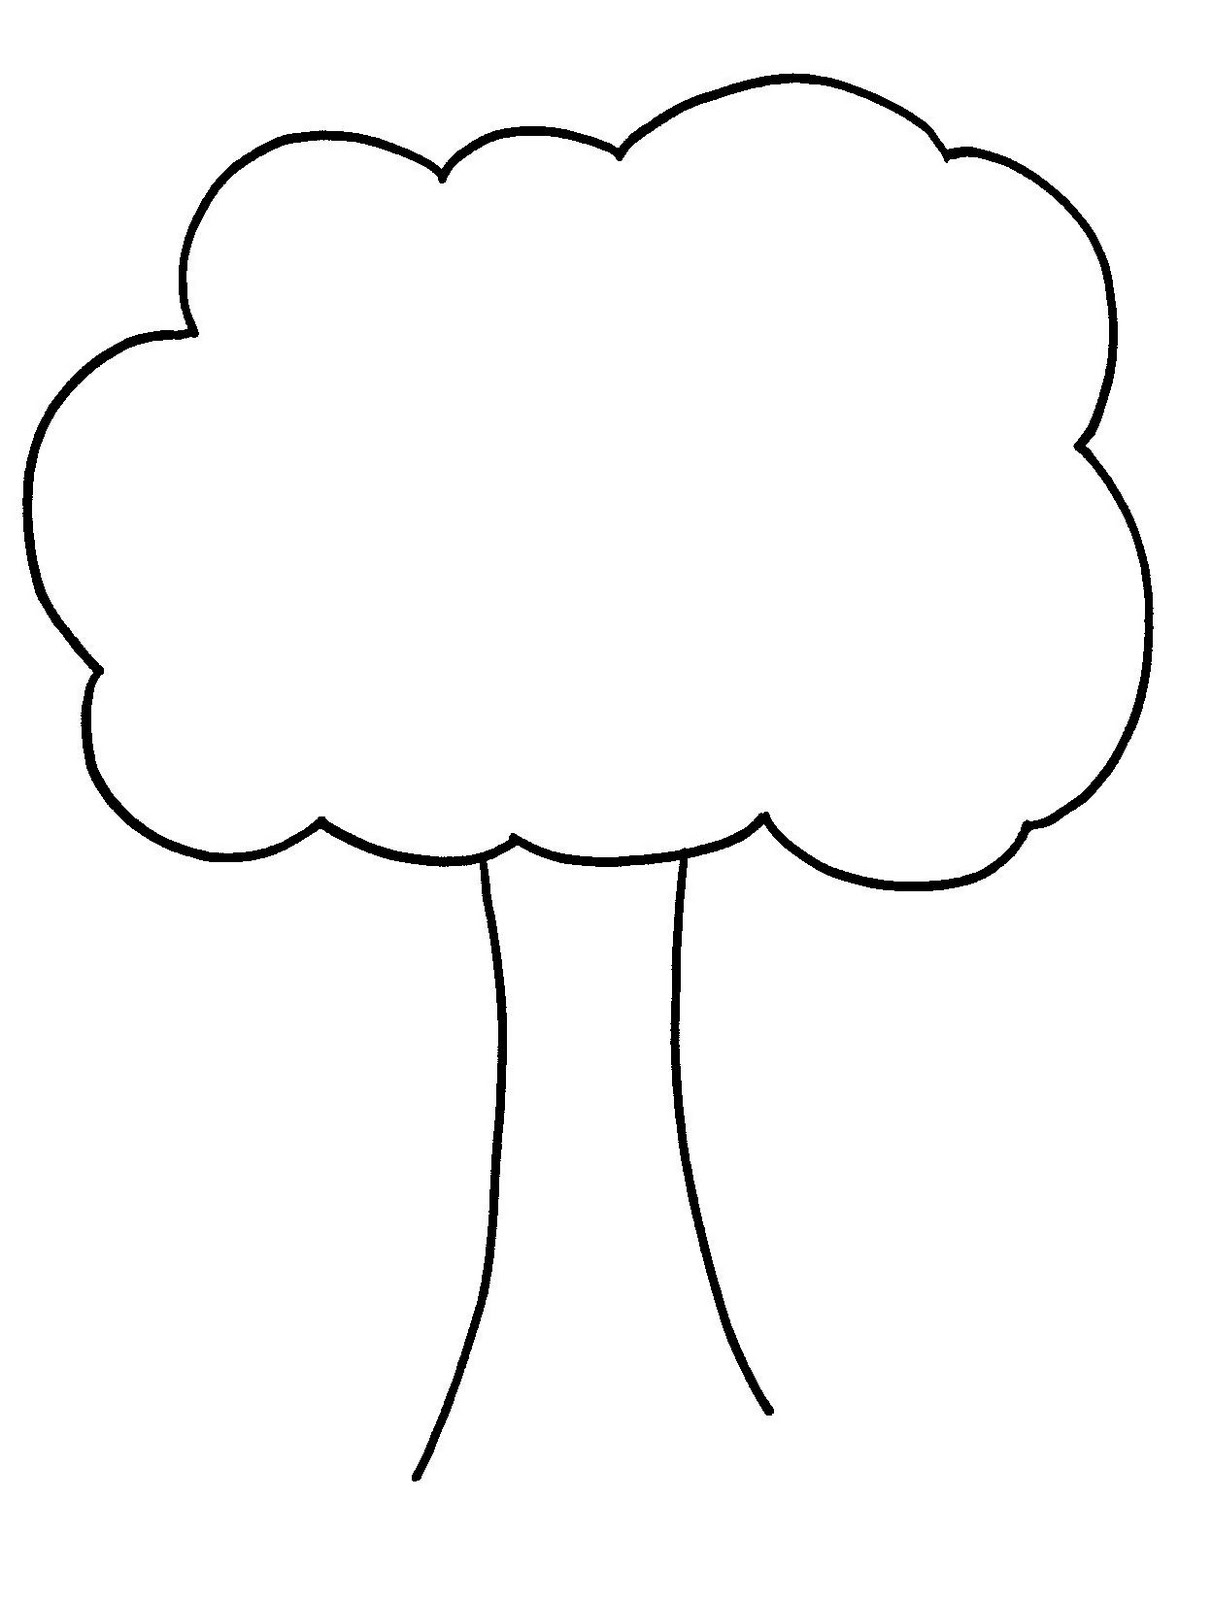 Tree Cut Out Clipart.